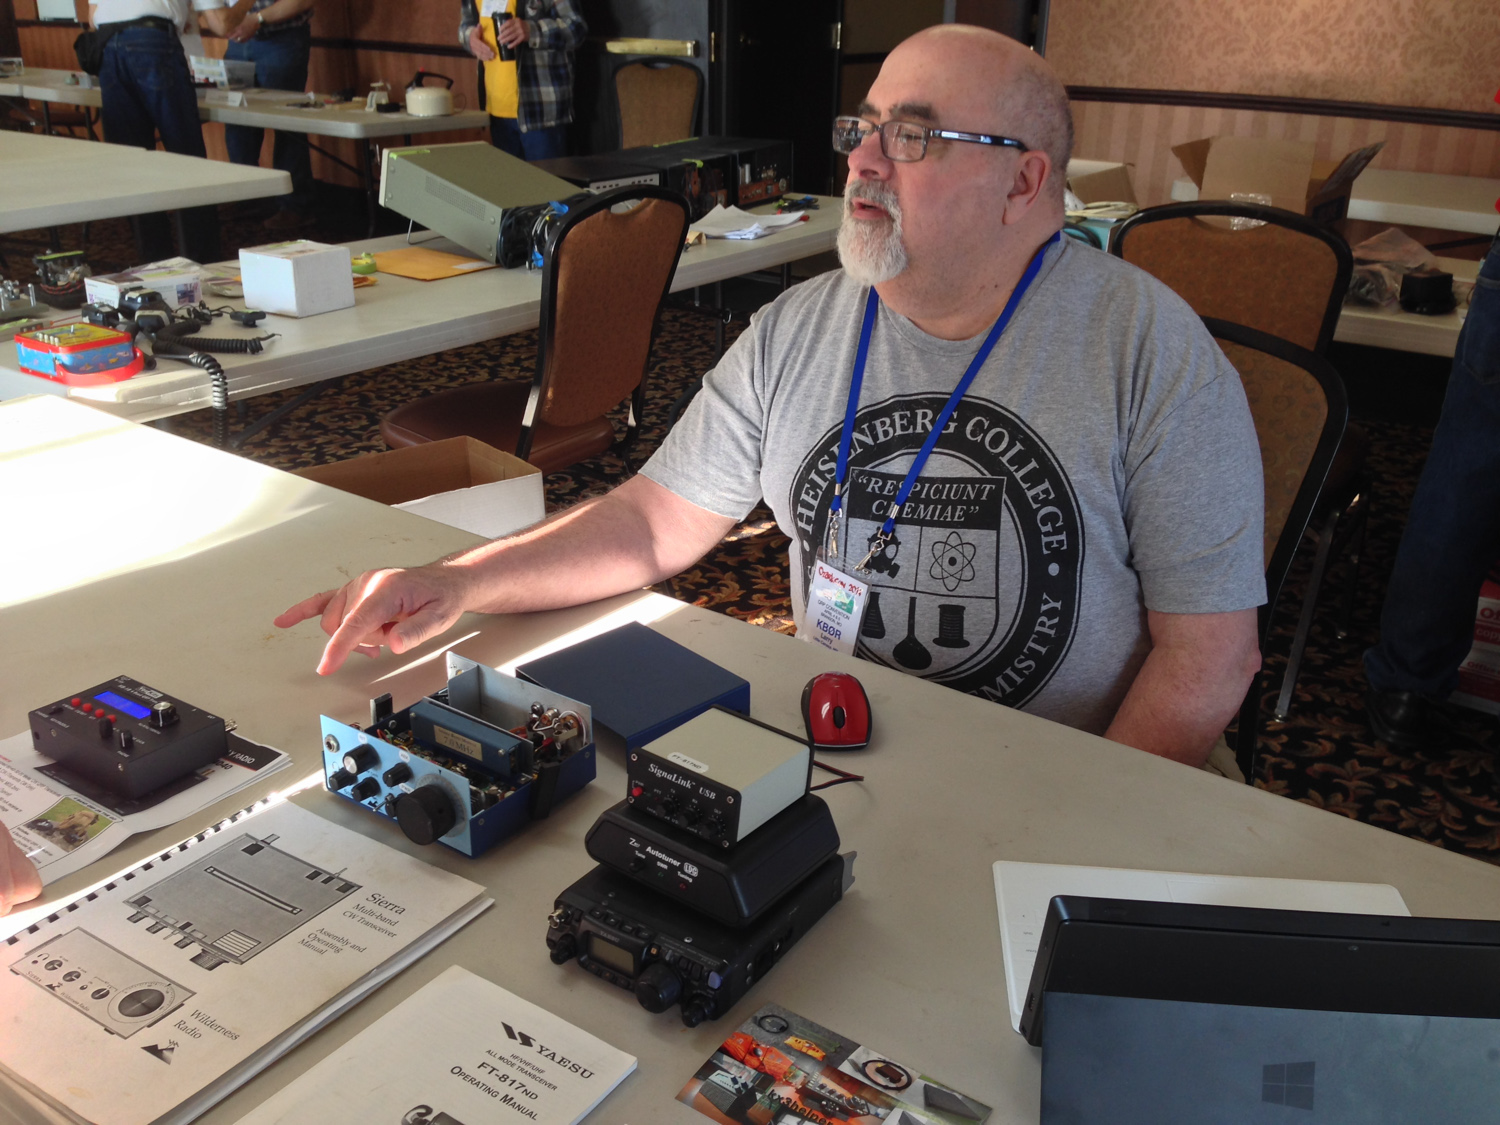 Larry is talking to folks about some rigs that he is selling